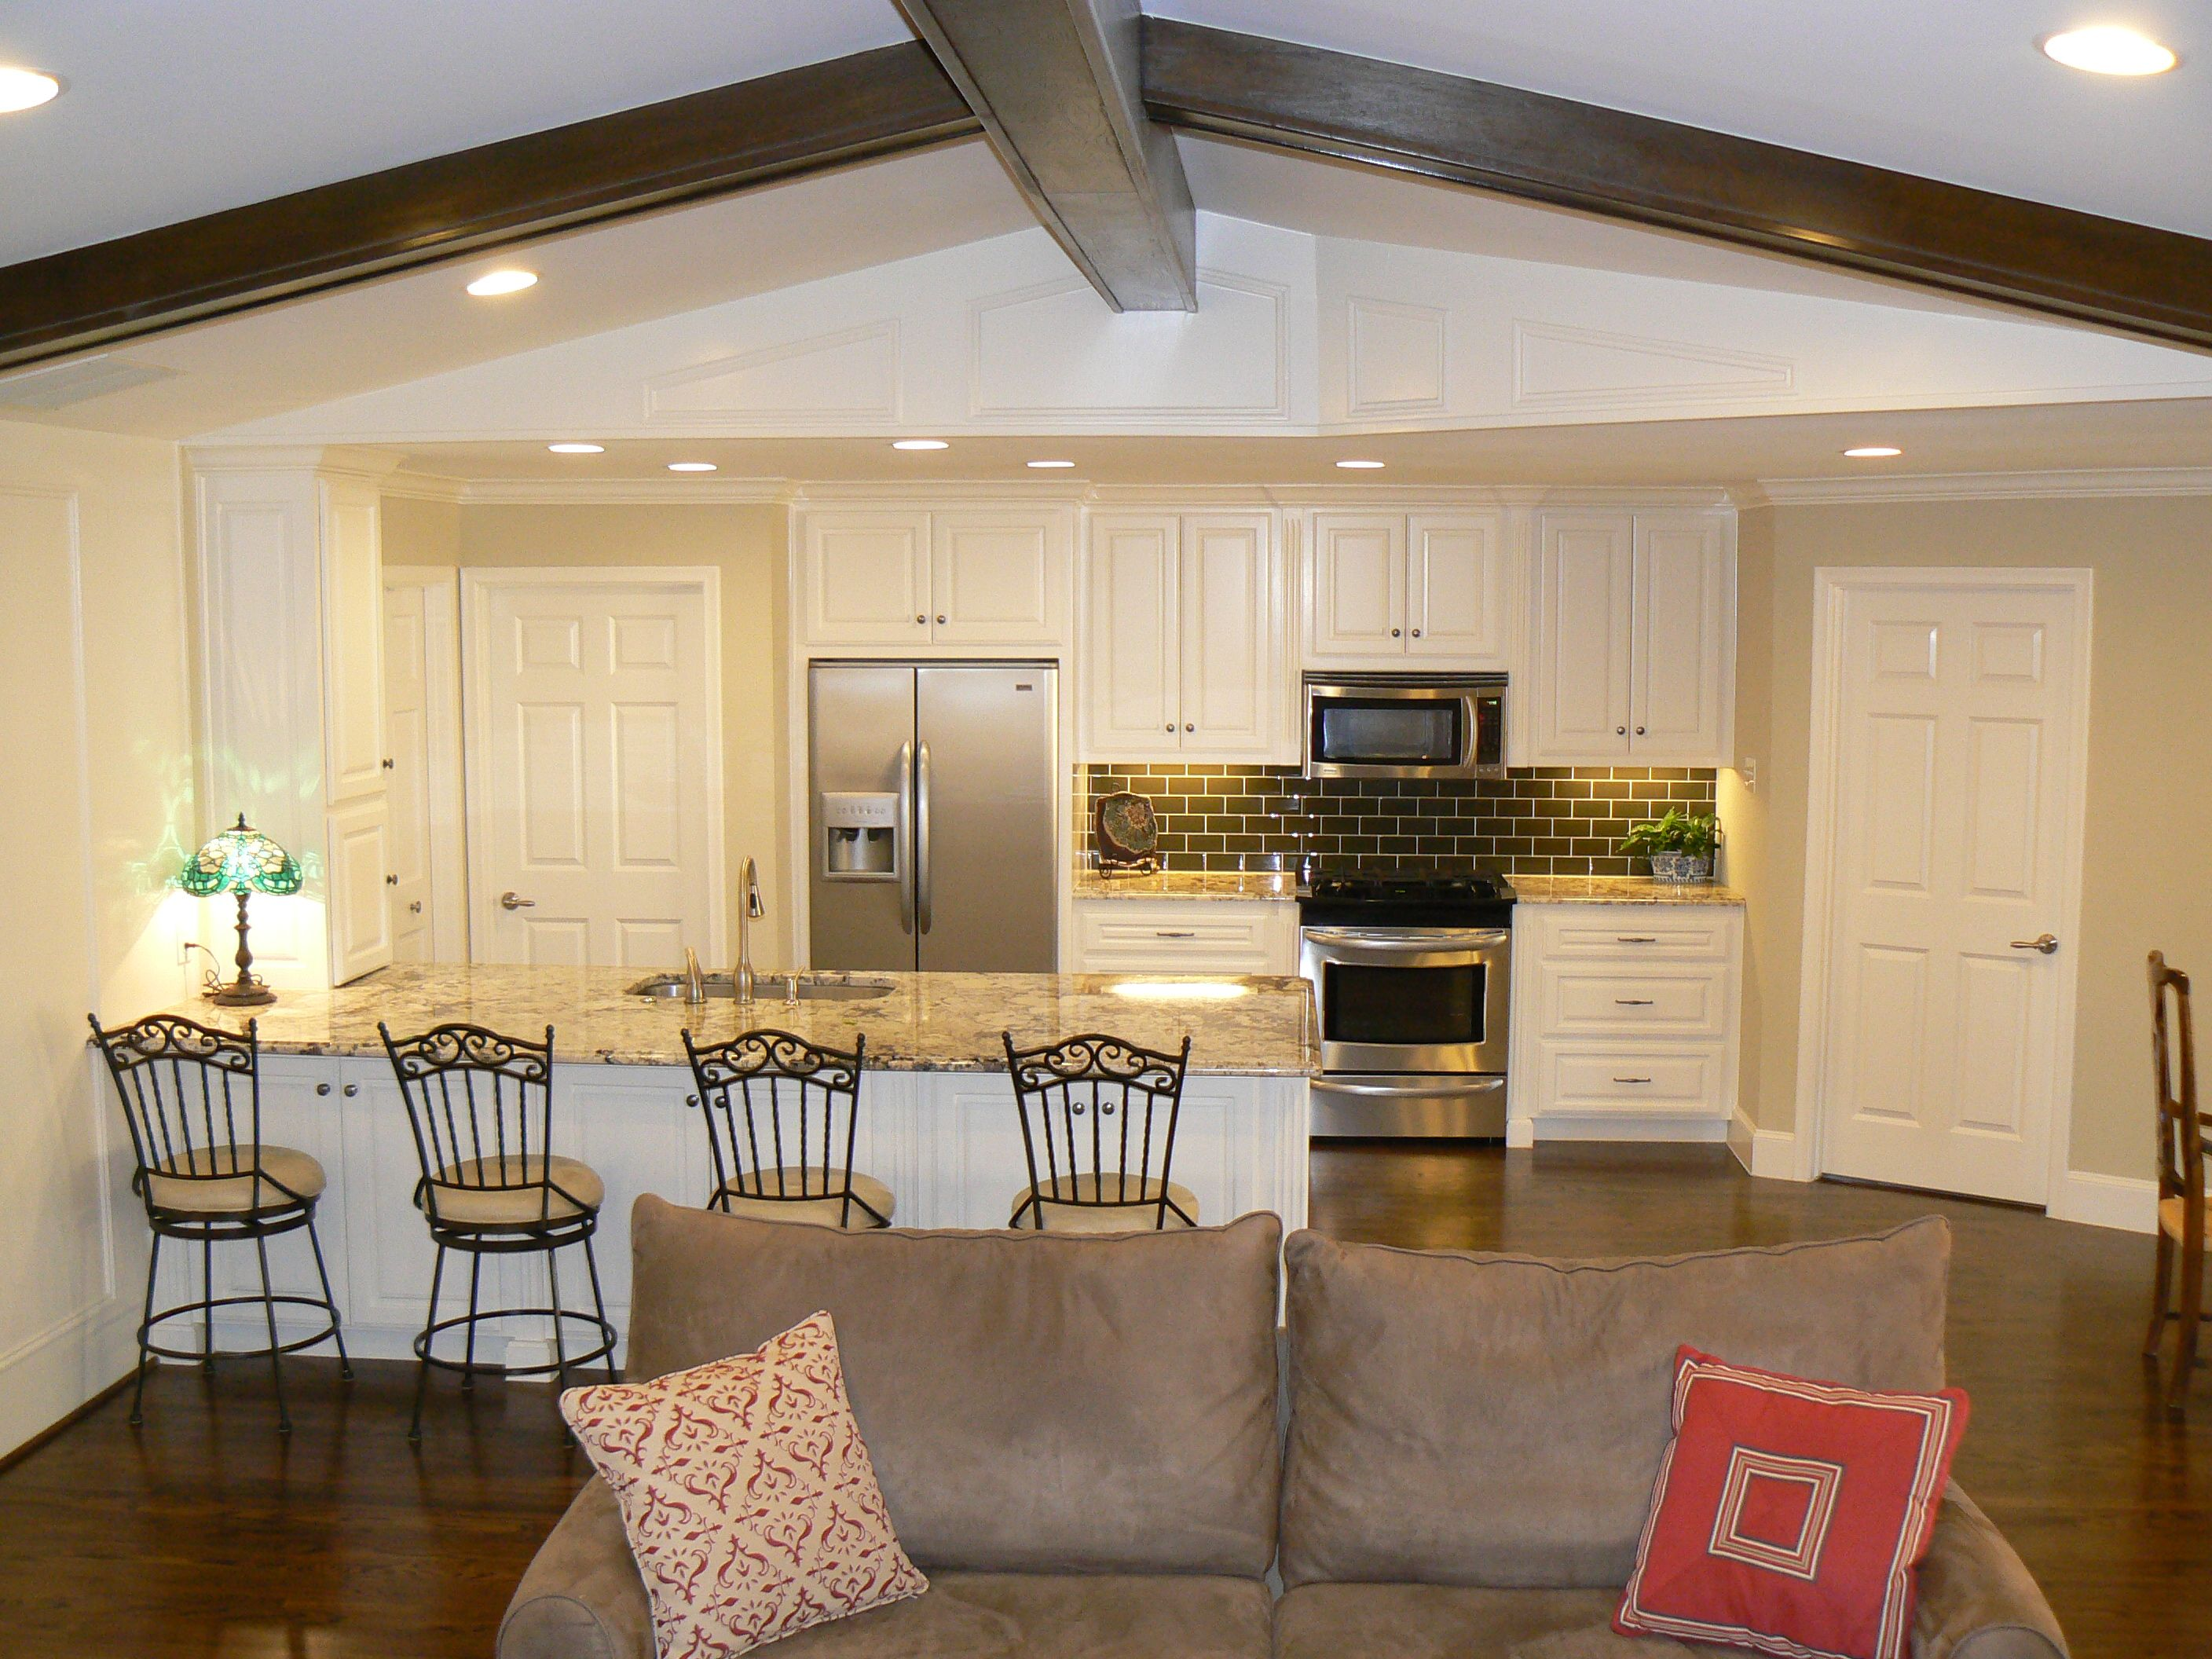 Image Result For Ideas To Make Galley Kitchen Open Concept Open Concept Kitchen Living Room Living Room And Kitchen Design Kitchen Design Open Galley kitchen remodel to open concept